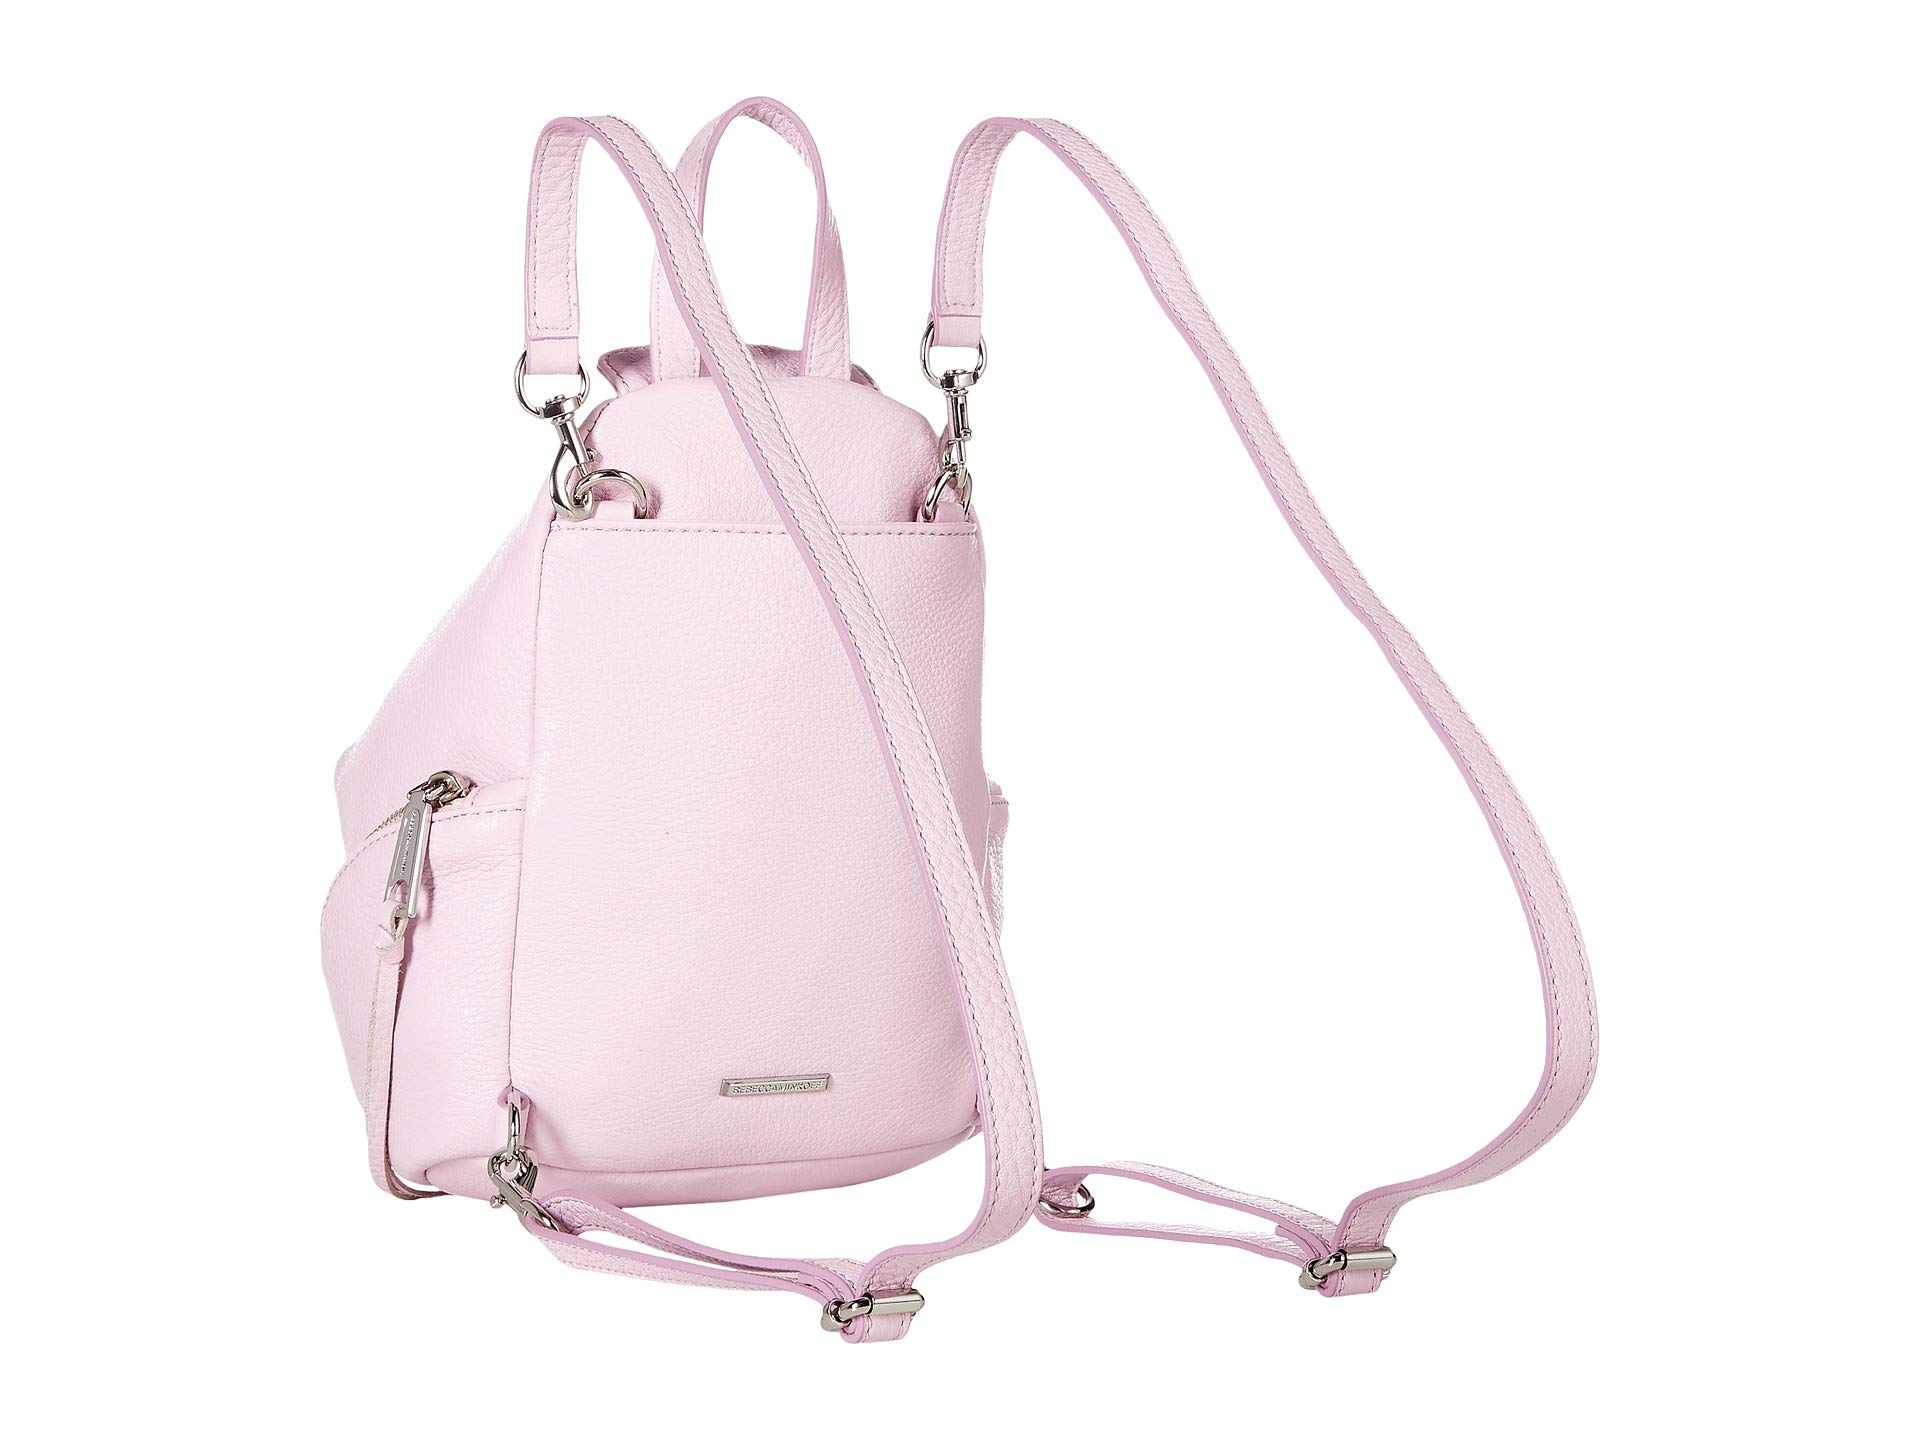 Backpack Minkoff Orchid Rebecca Light Julian Mini Convertible 8IPwn0qC